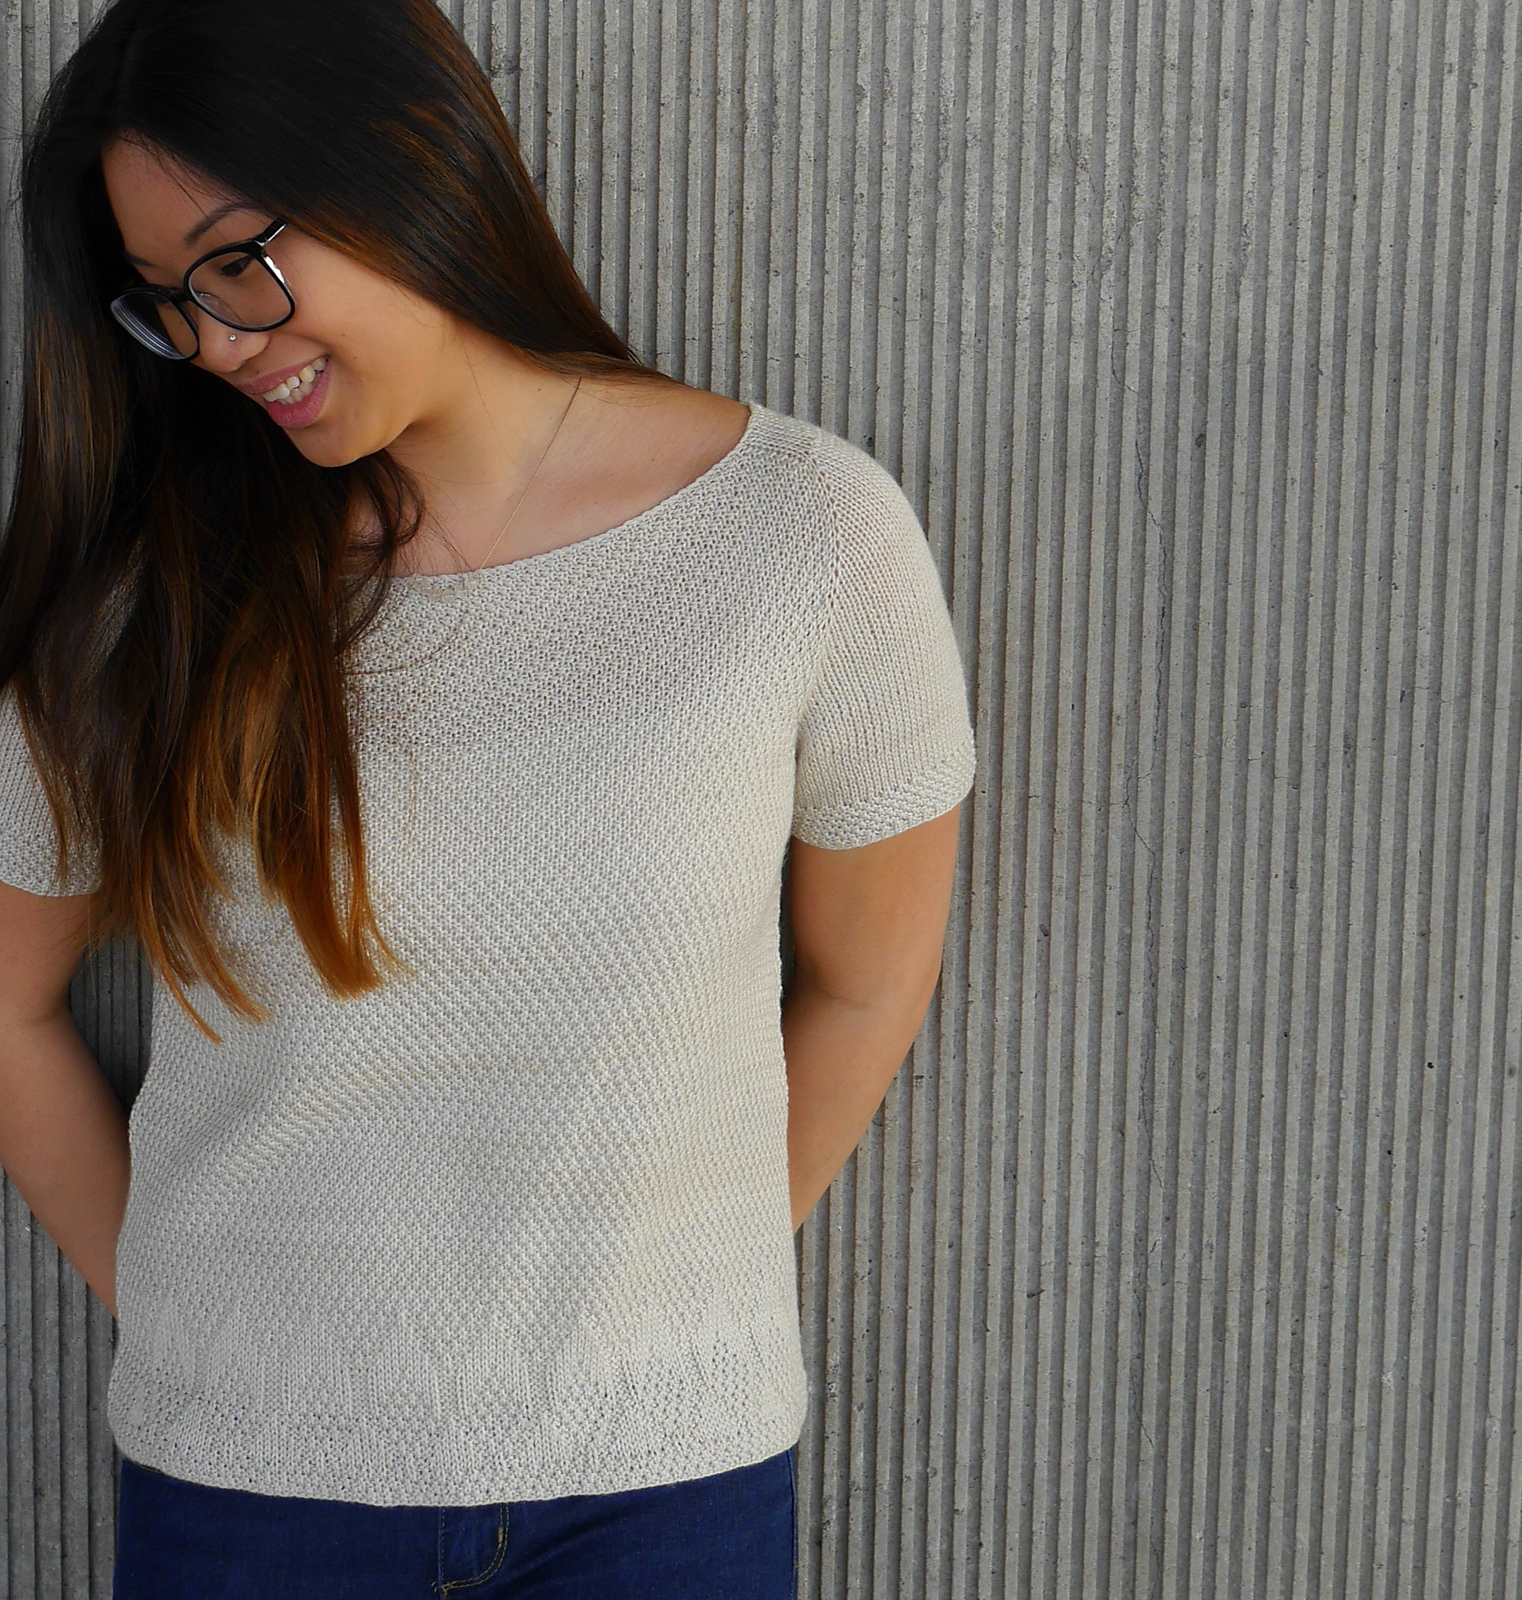 River Light Tee by Olive Knits